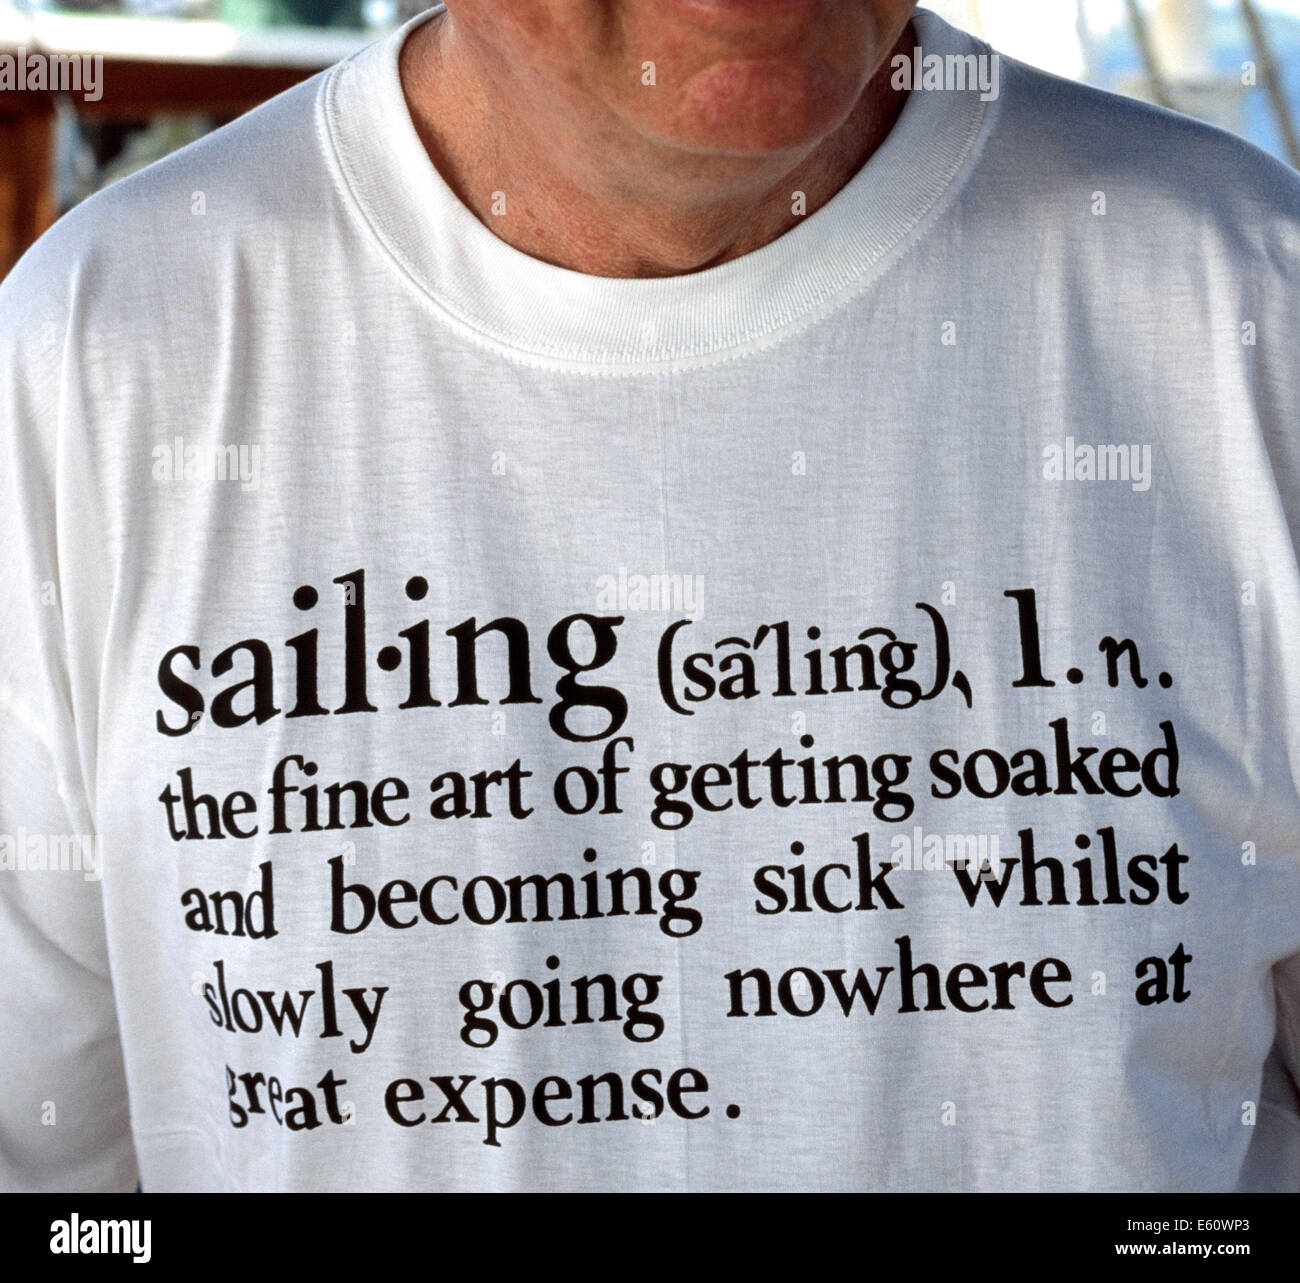 A man aboard a sailboat in the Caribbean Sea wears a white T-shirt with writing that gives a humorous dictionary - Stock Image